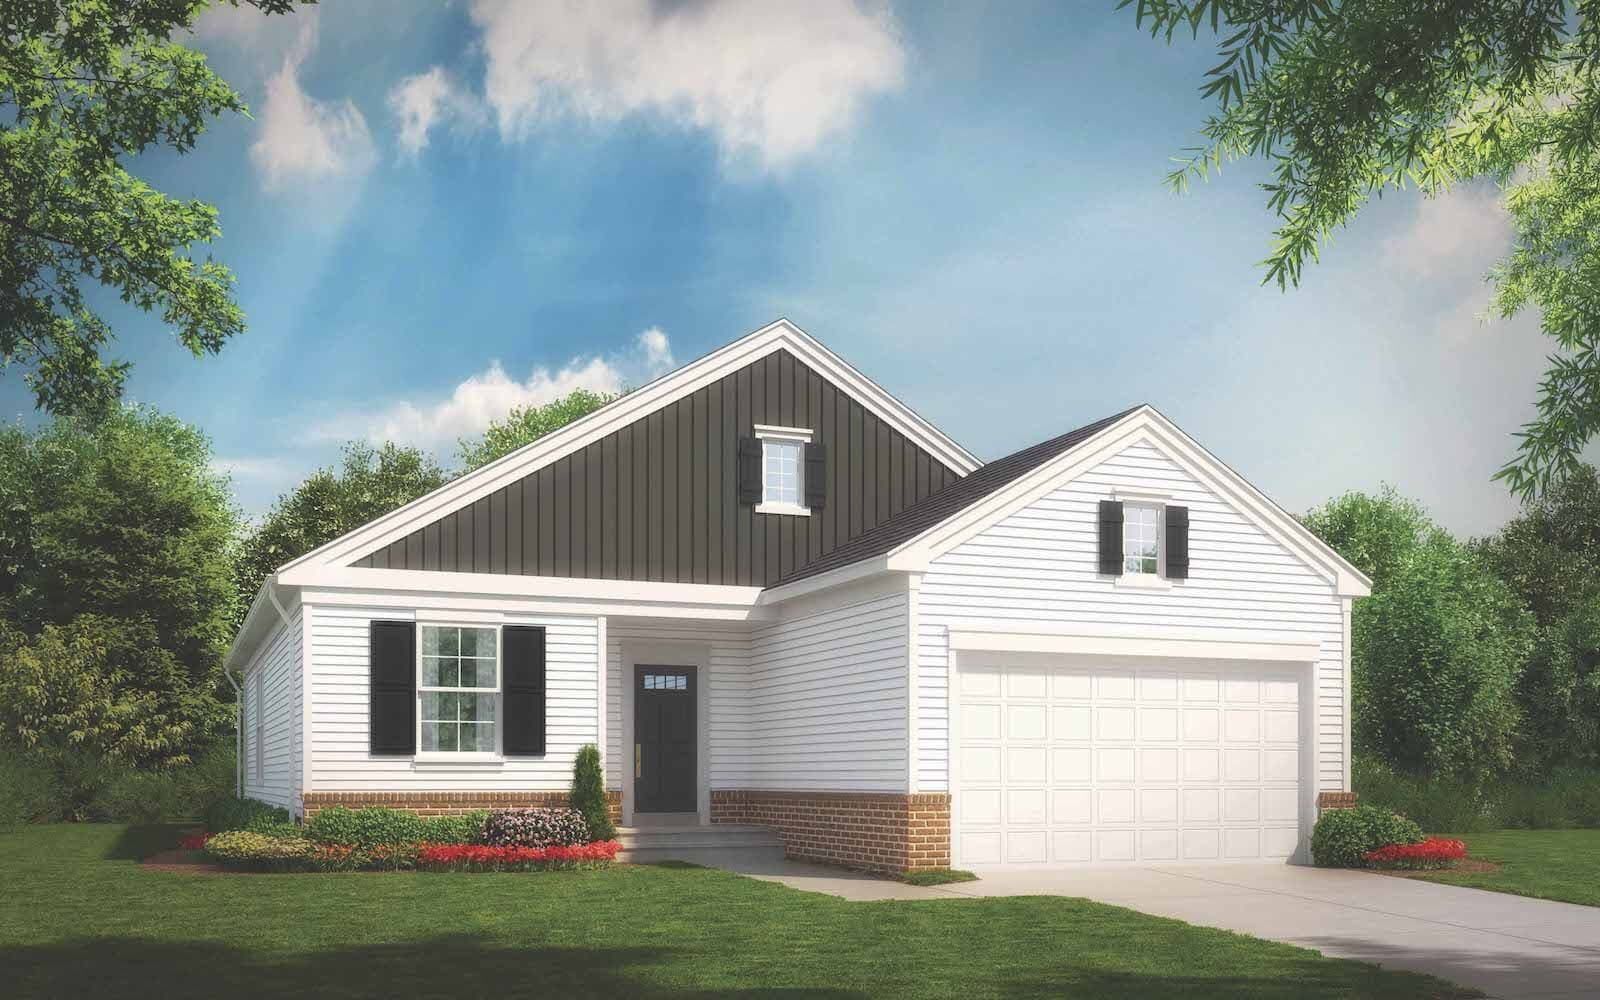 Exterior:Elevation 1 of the Riverton a home design offered at Snowden Bridge in Stephenson VA by Brookfield Residential